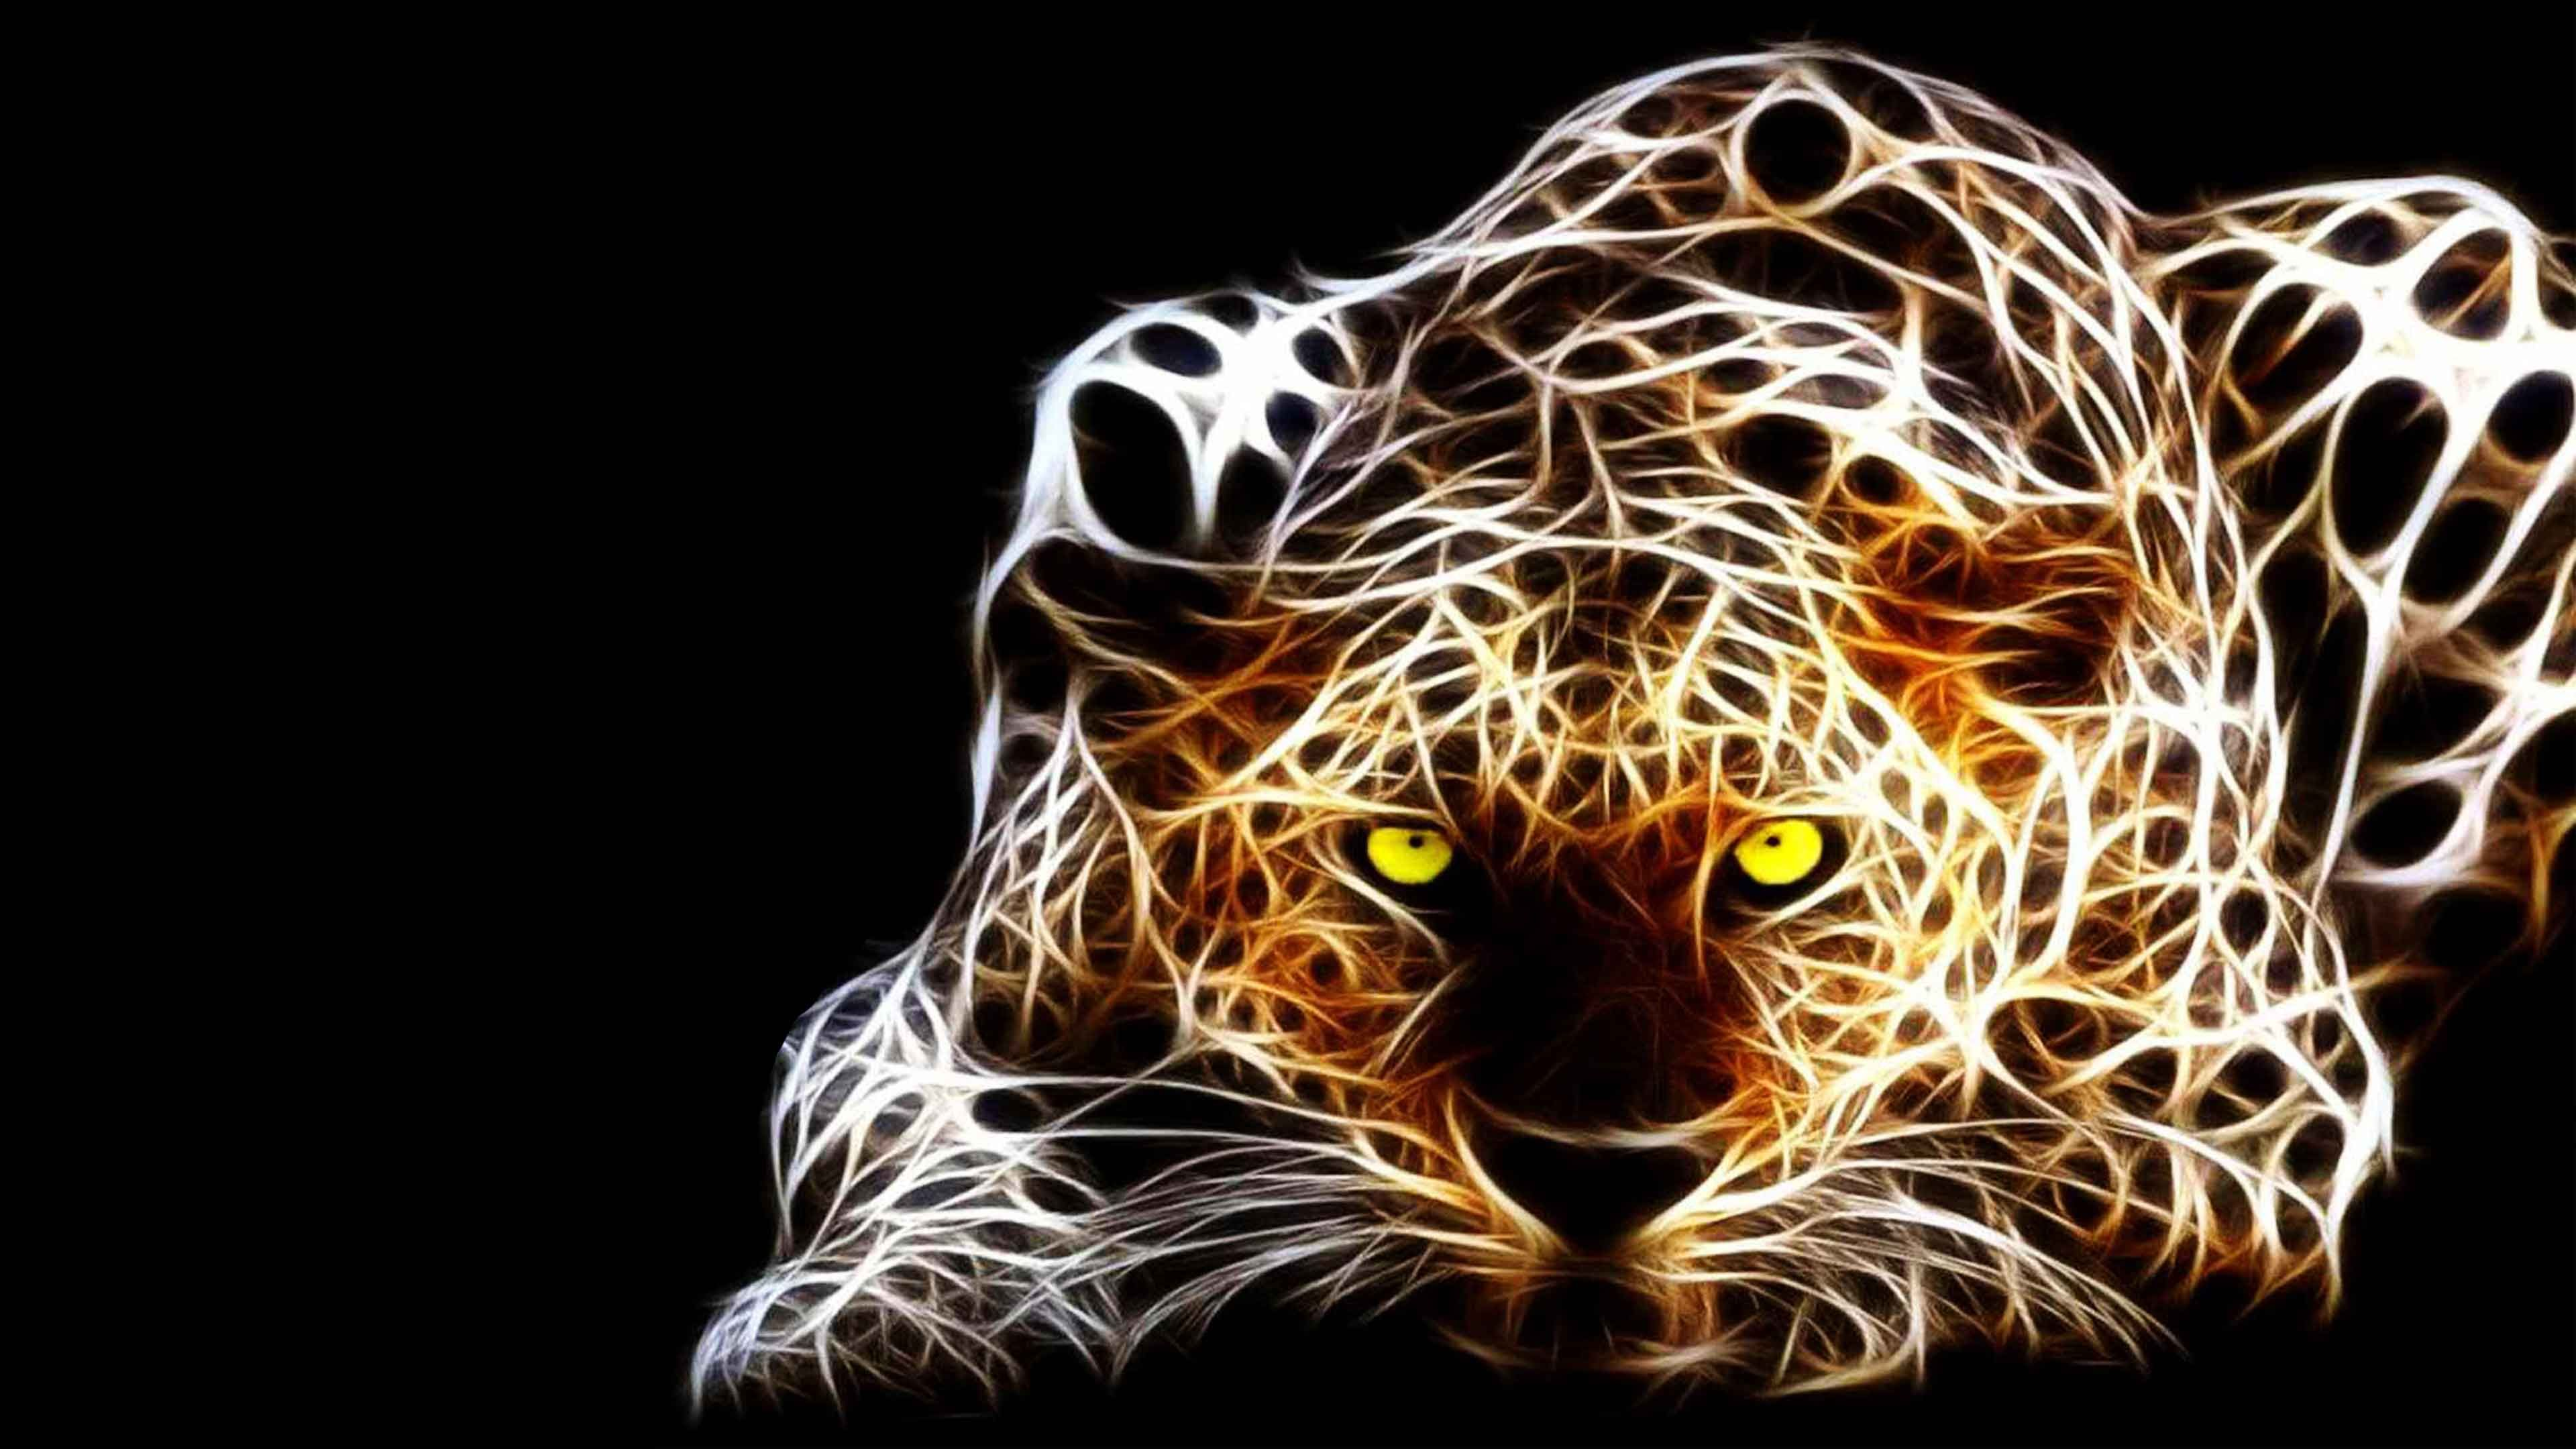 3D Tiger Background Tiger art, Tiger wallpaper, Leopard